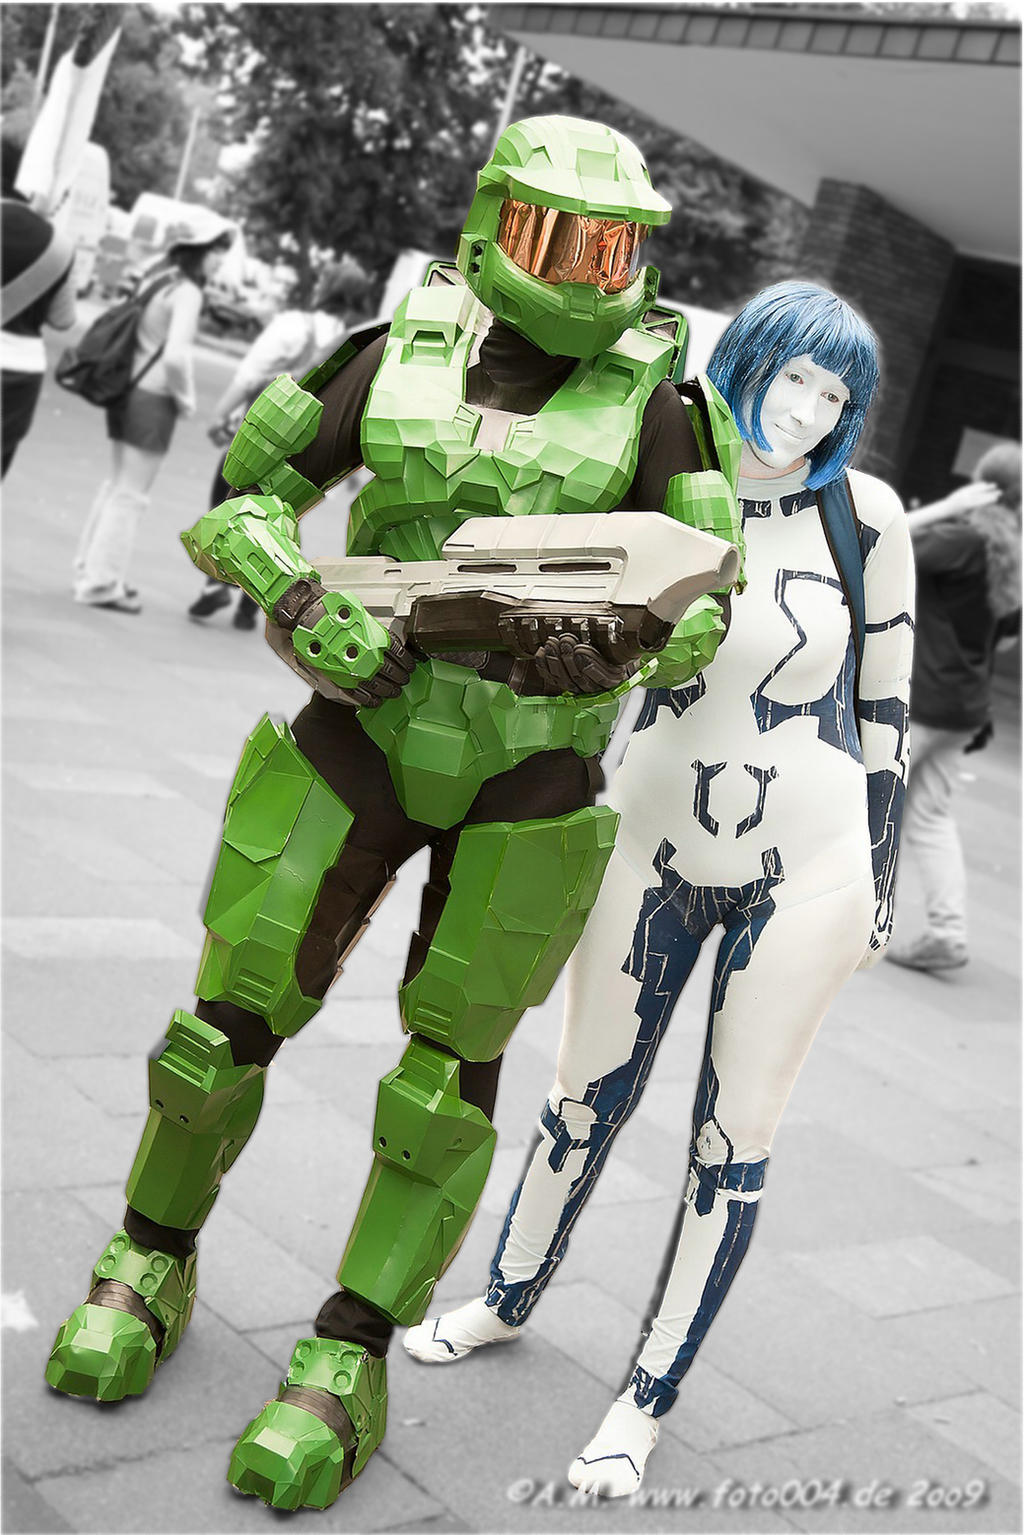 ... Halo - Master Chief and Cortana by TooN-Twins & Halo - Master Chief and Cortana by TooN-Twins on DeviantArt